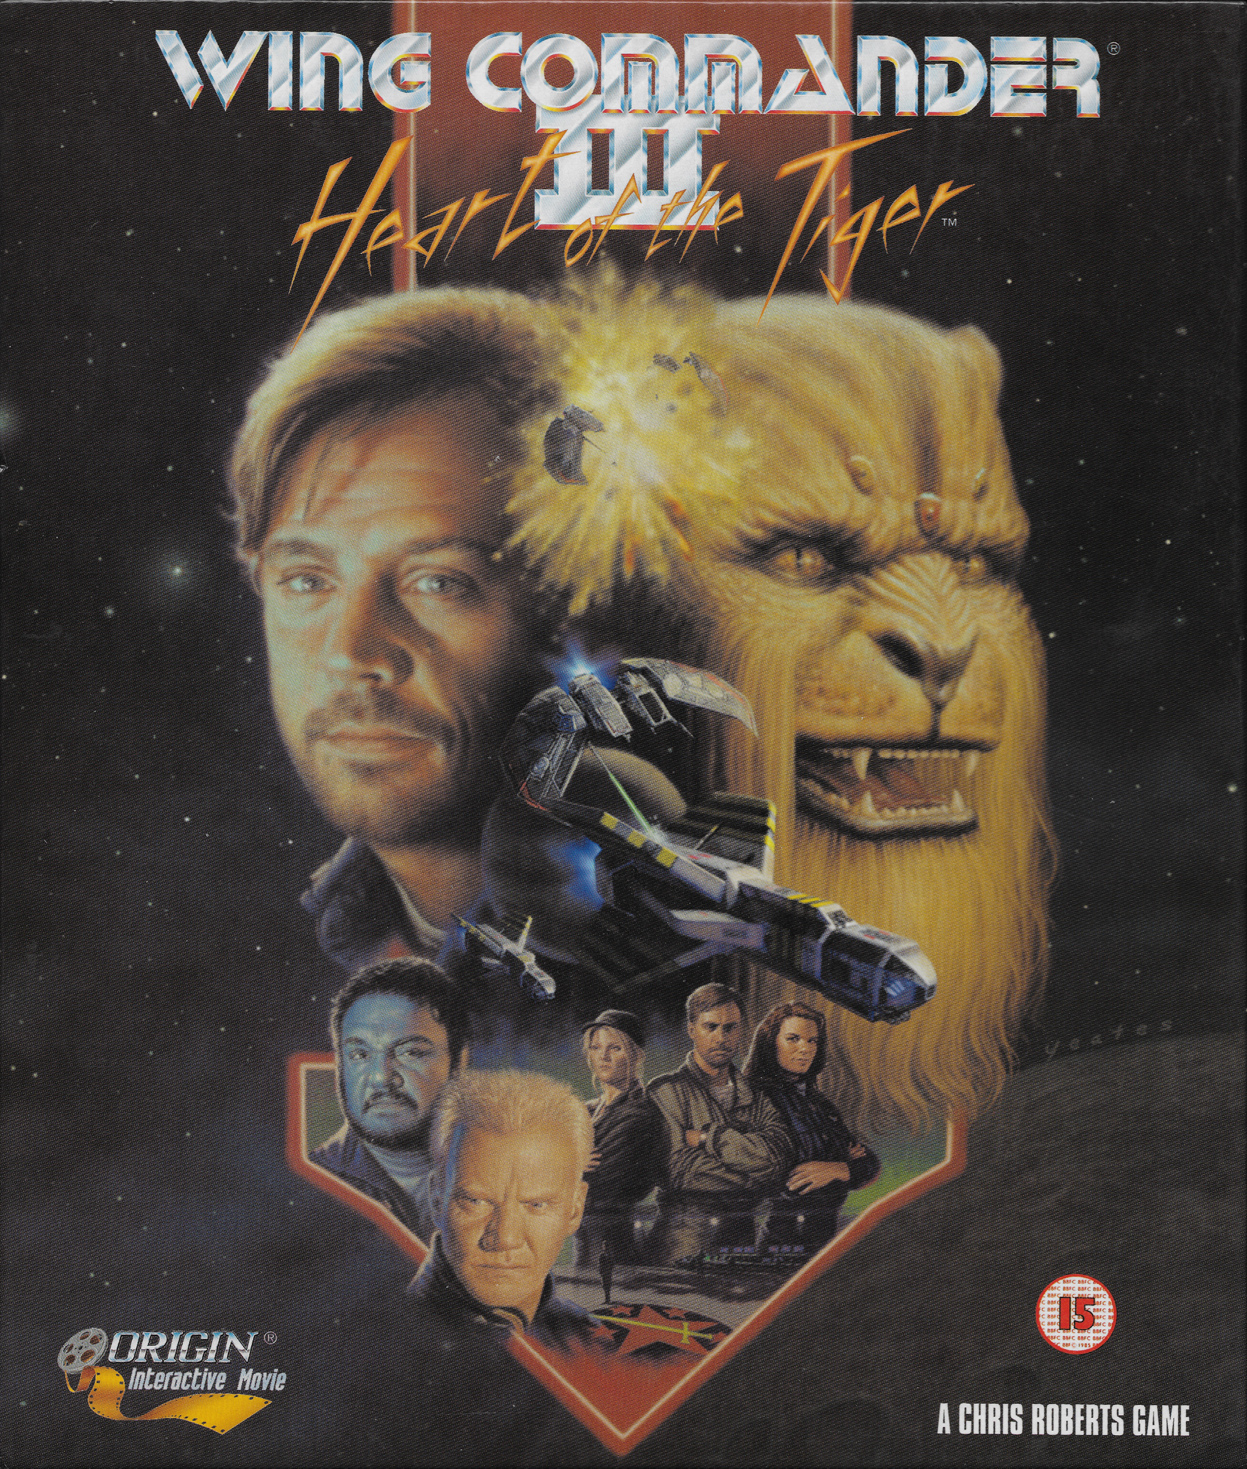 Wing commander iii heart of the tiger series background for Wing commander